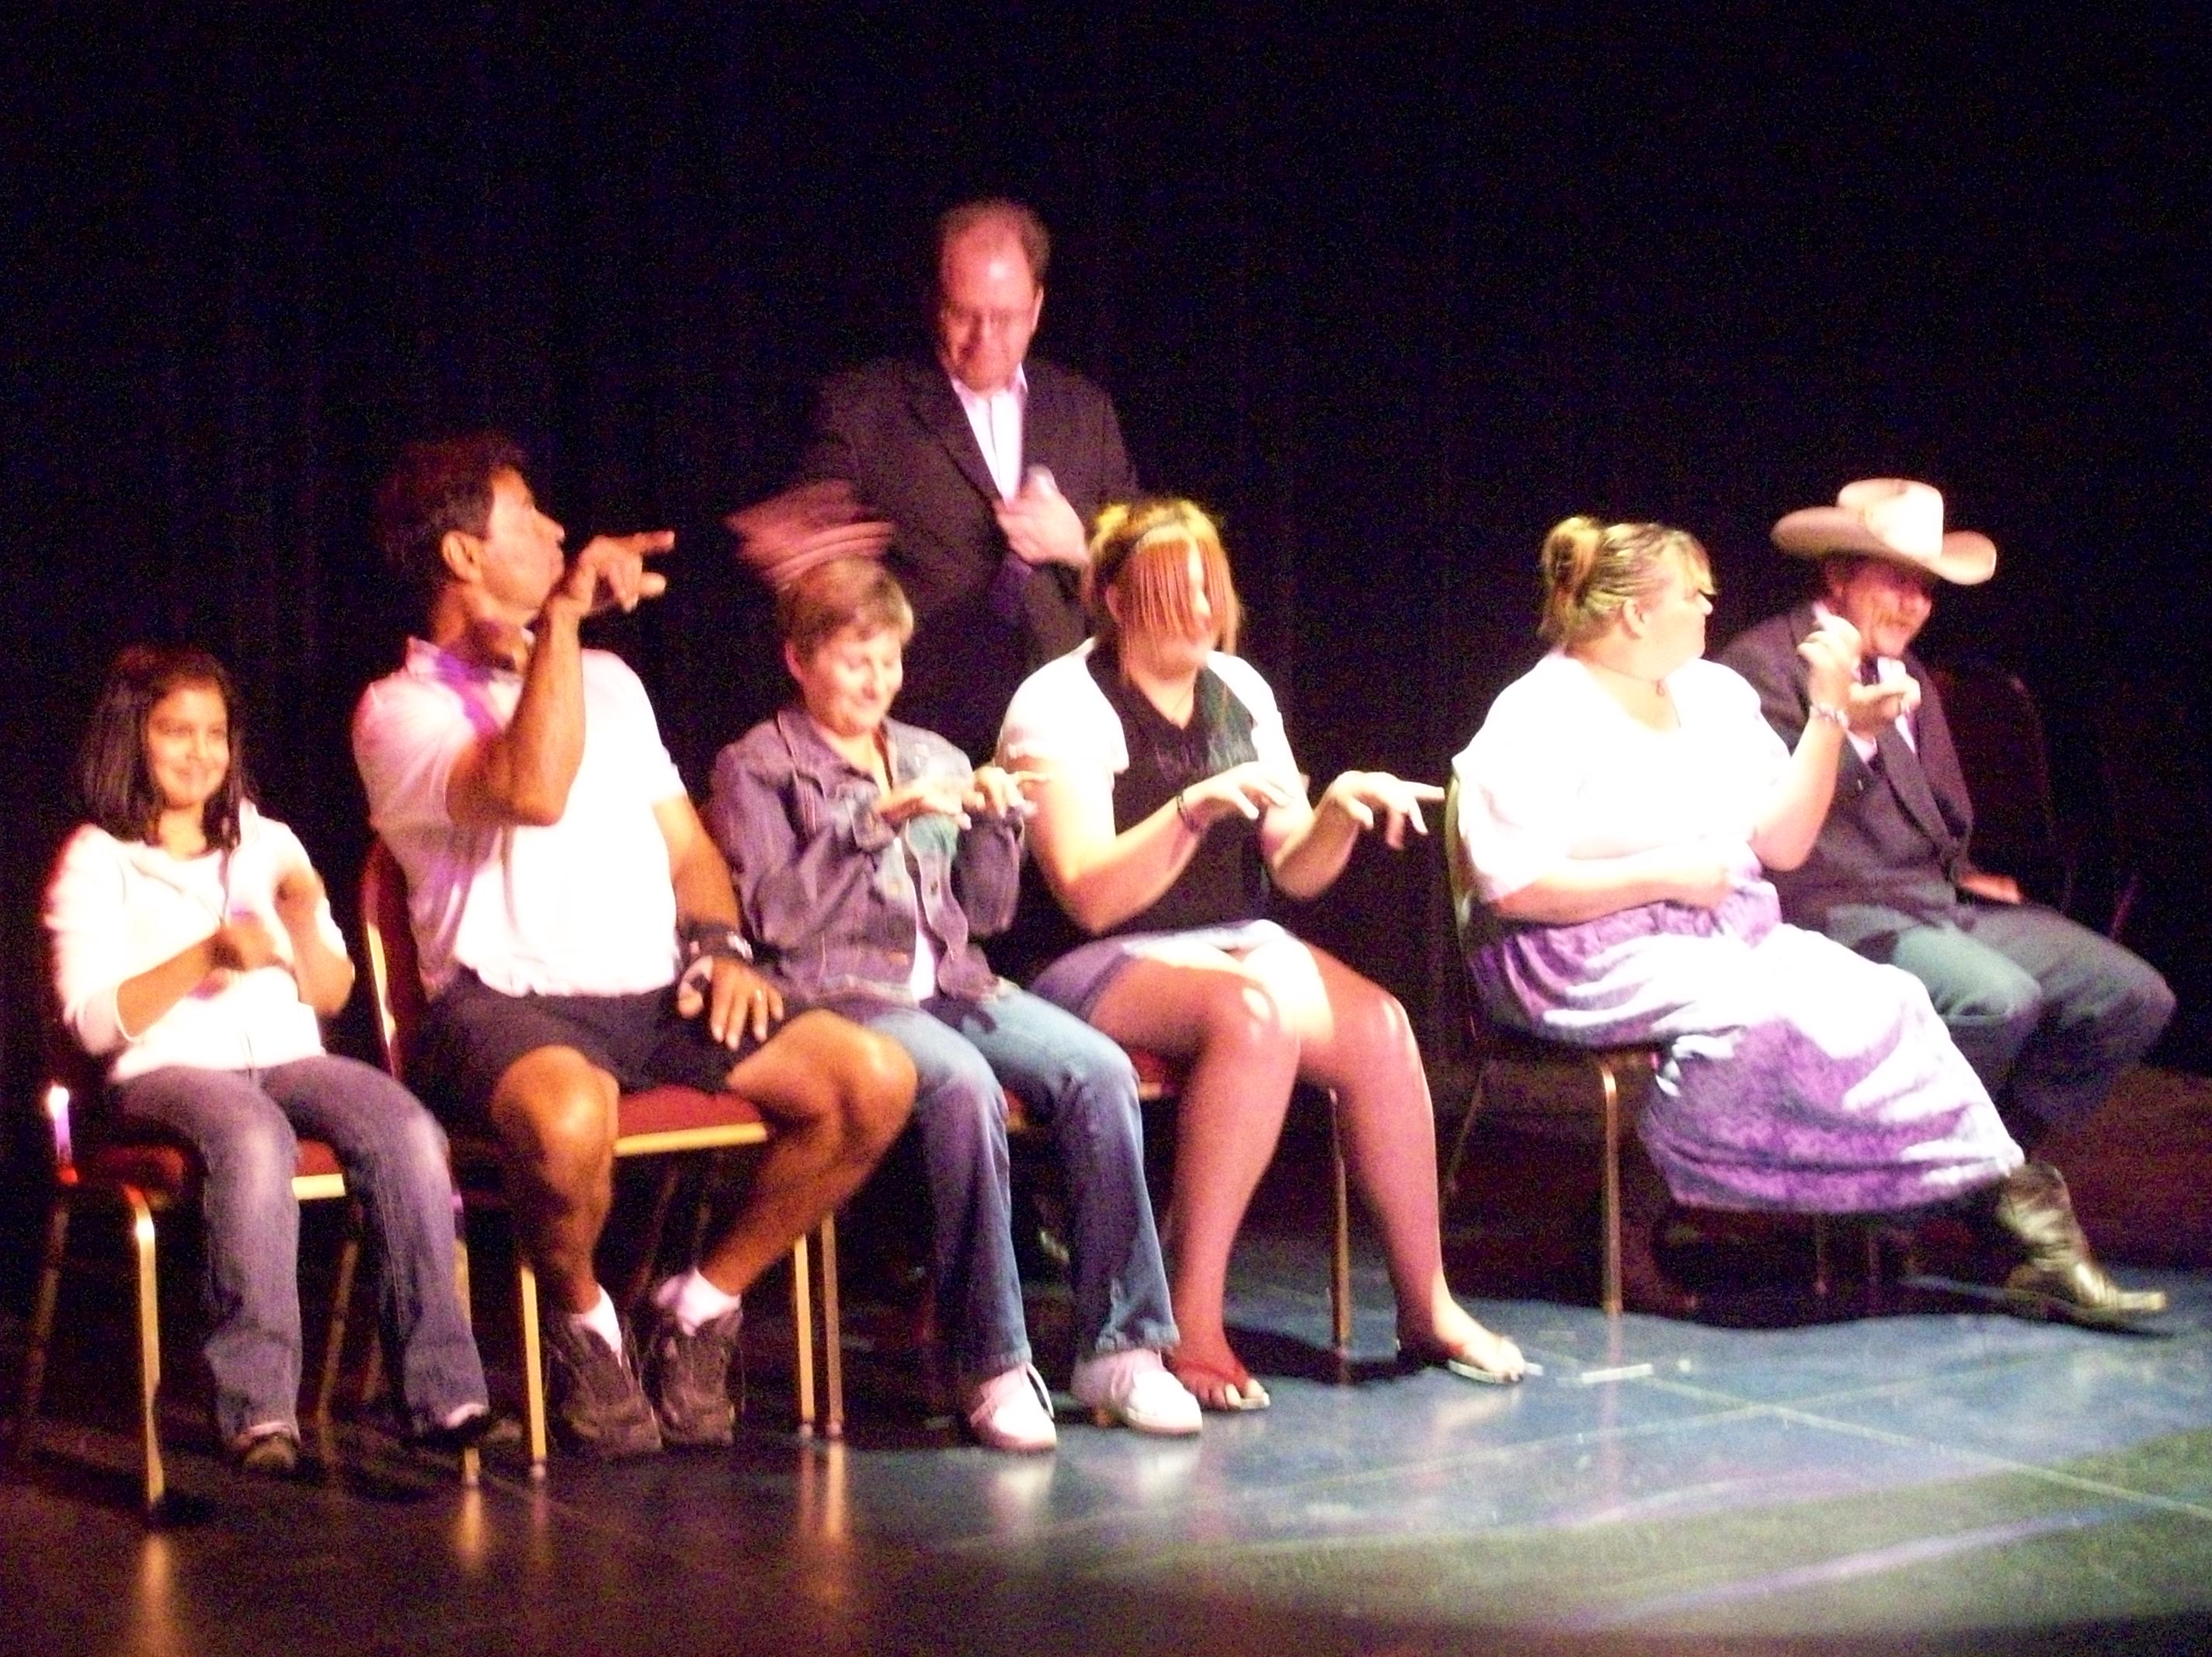 hypnotized in this reno show www.renohypnotist.com